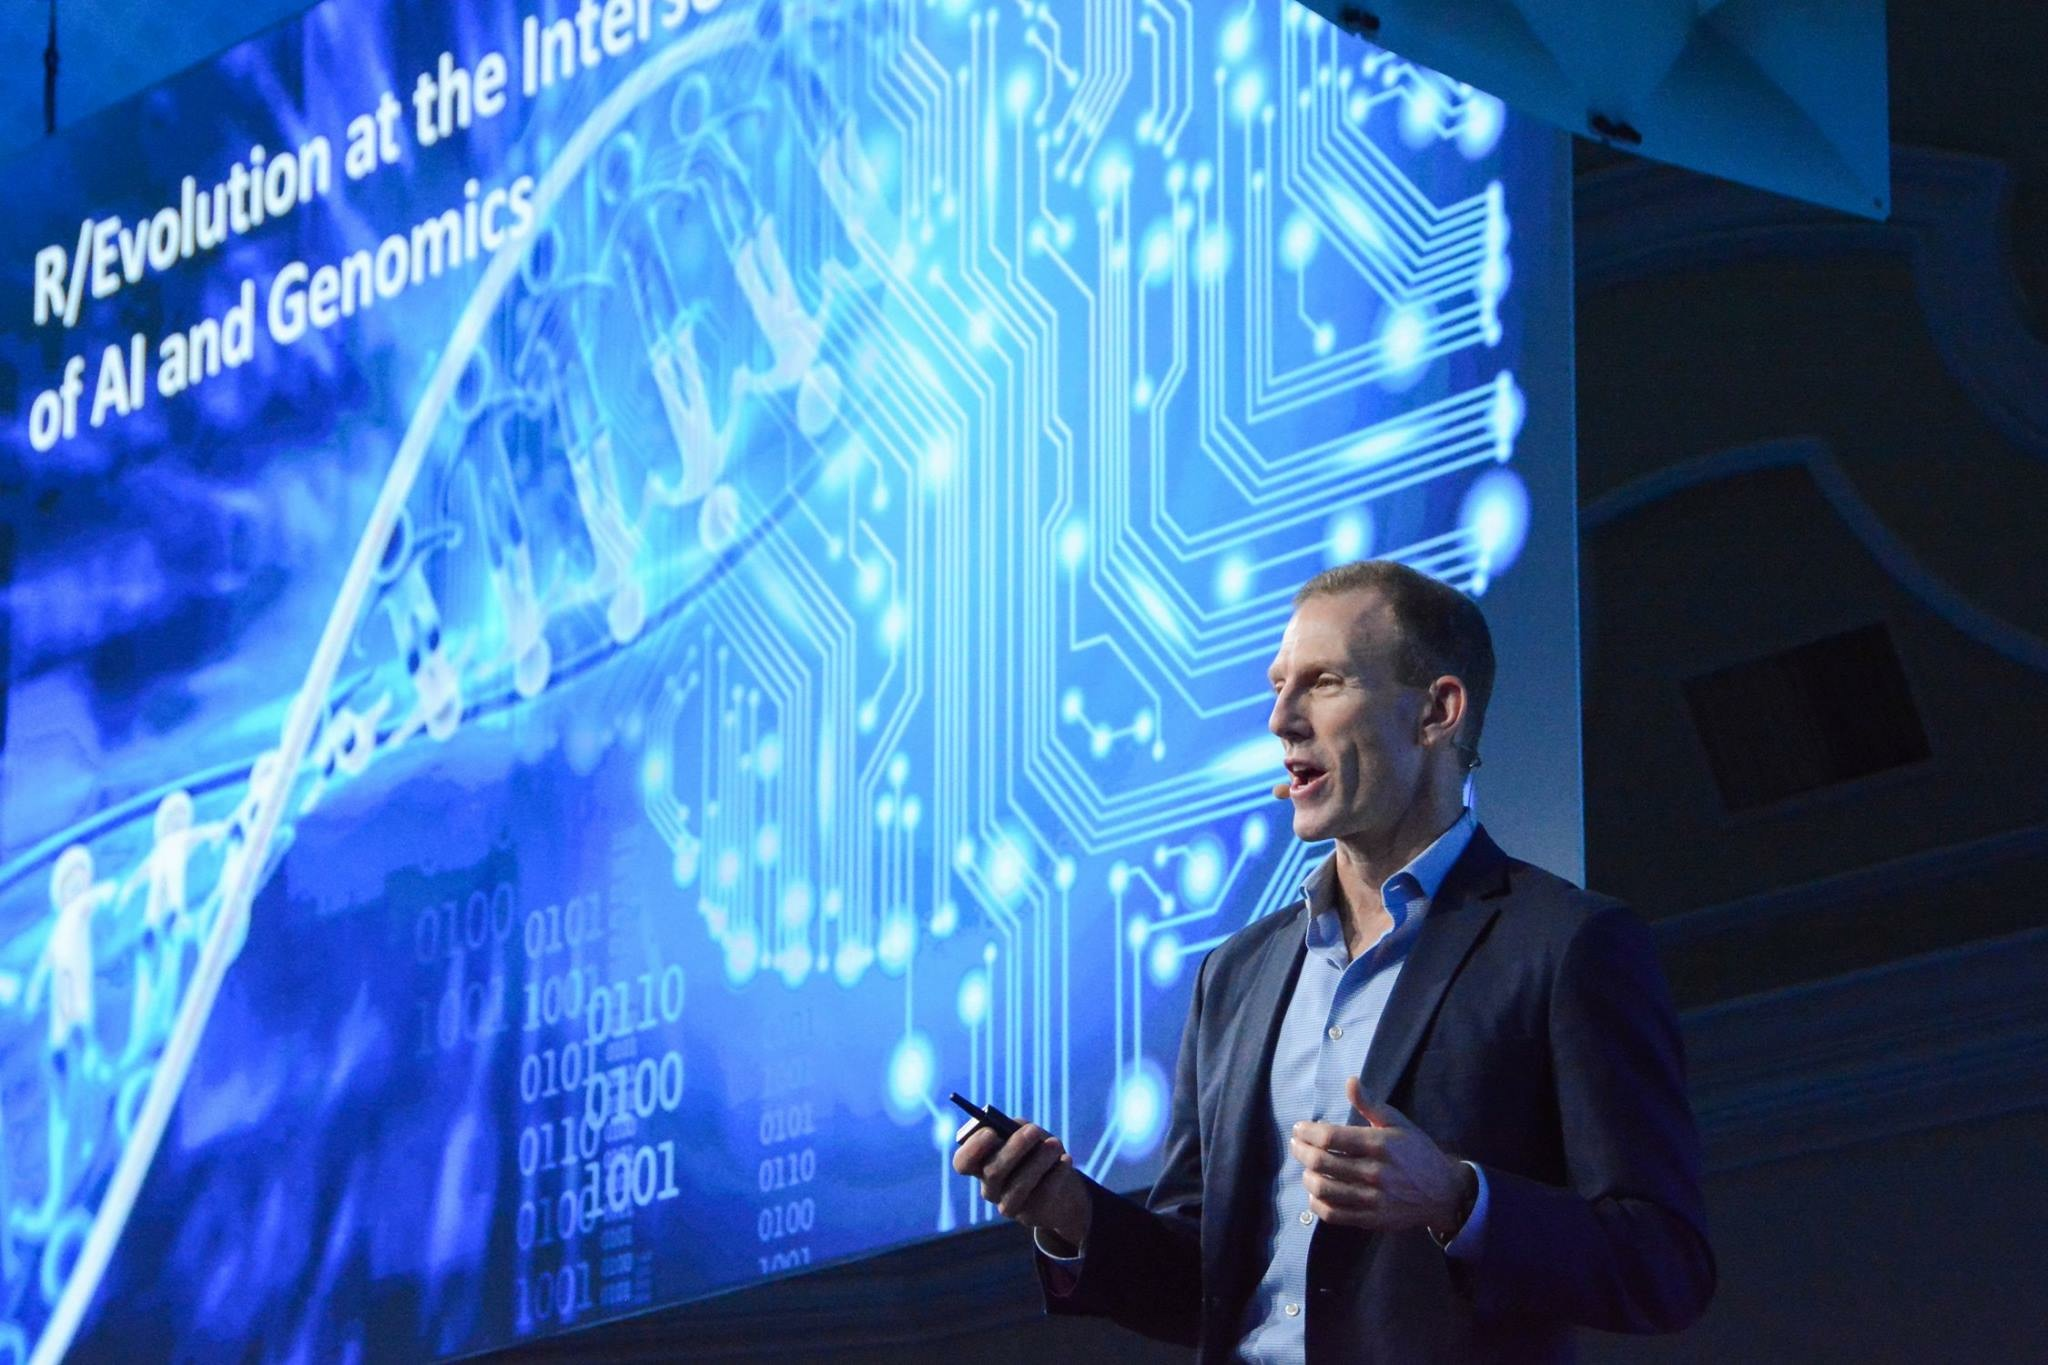 Evangelizing about the intersecting AI and genomics revolutions for Singularity University